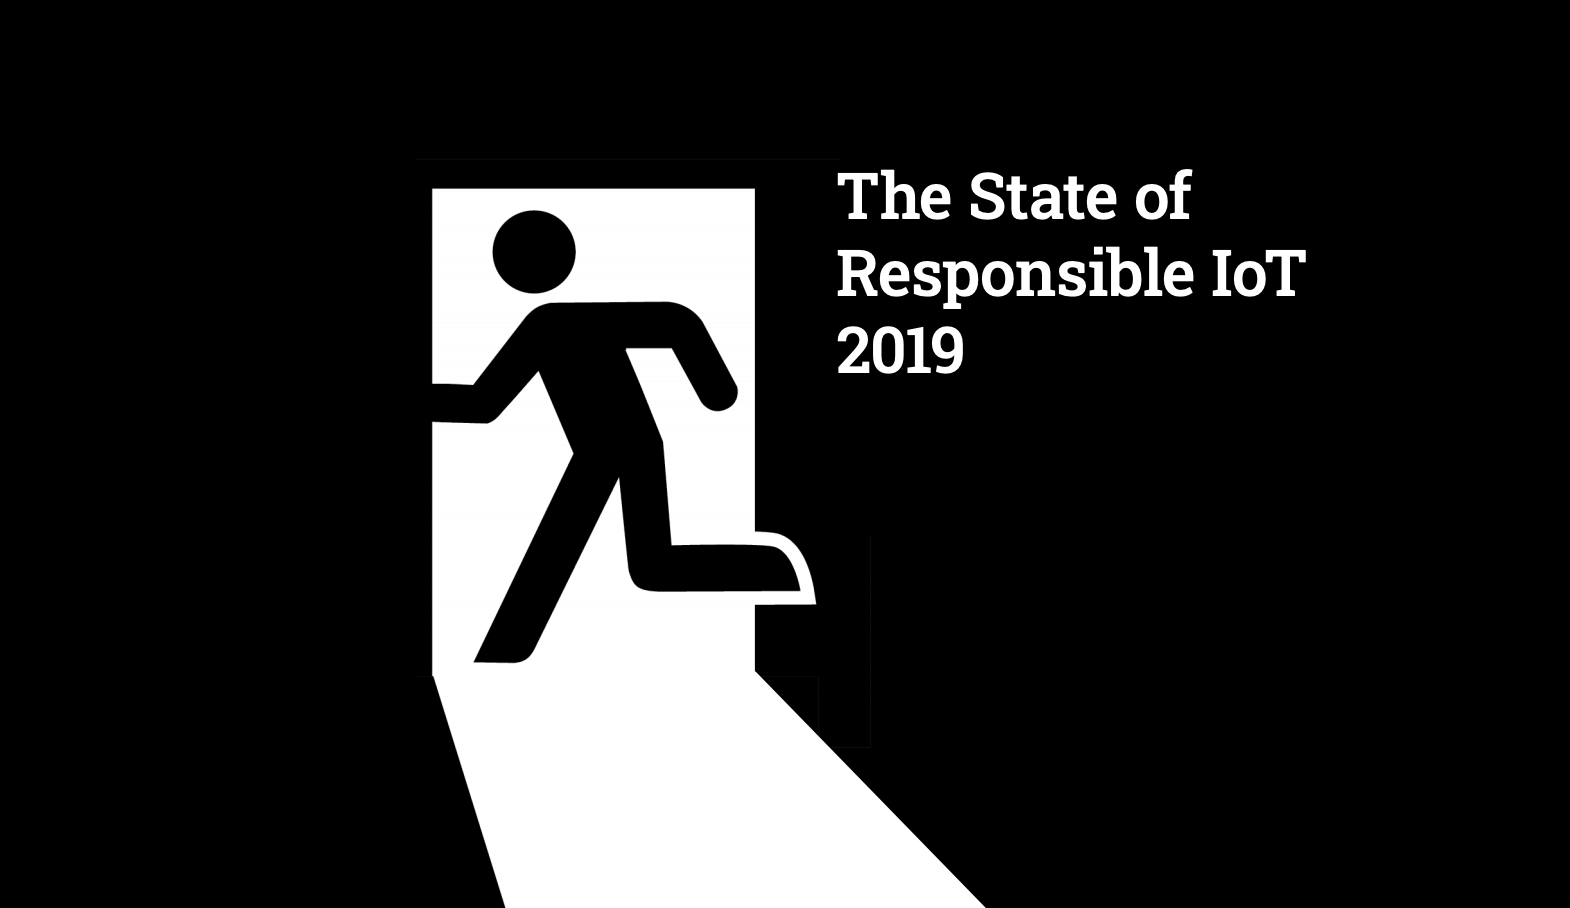 A simple illustrated image of a person running through an open door with the words 'The State of Responsible IoT 2019